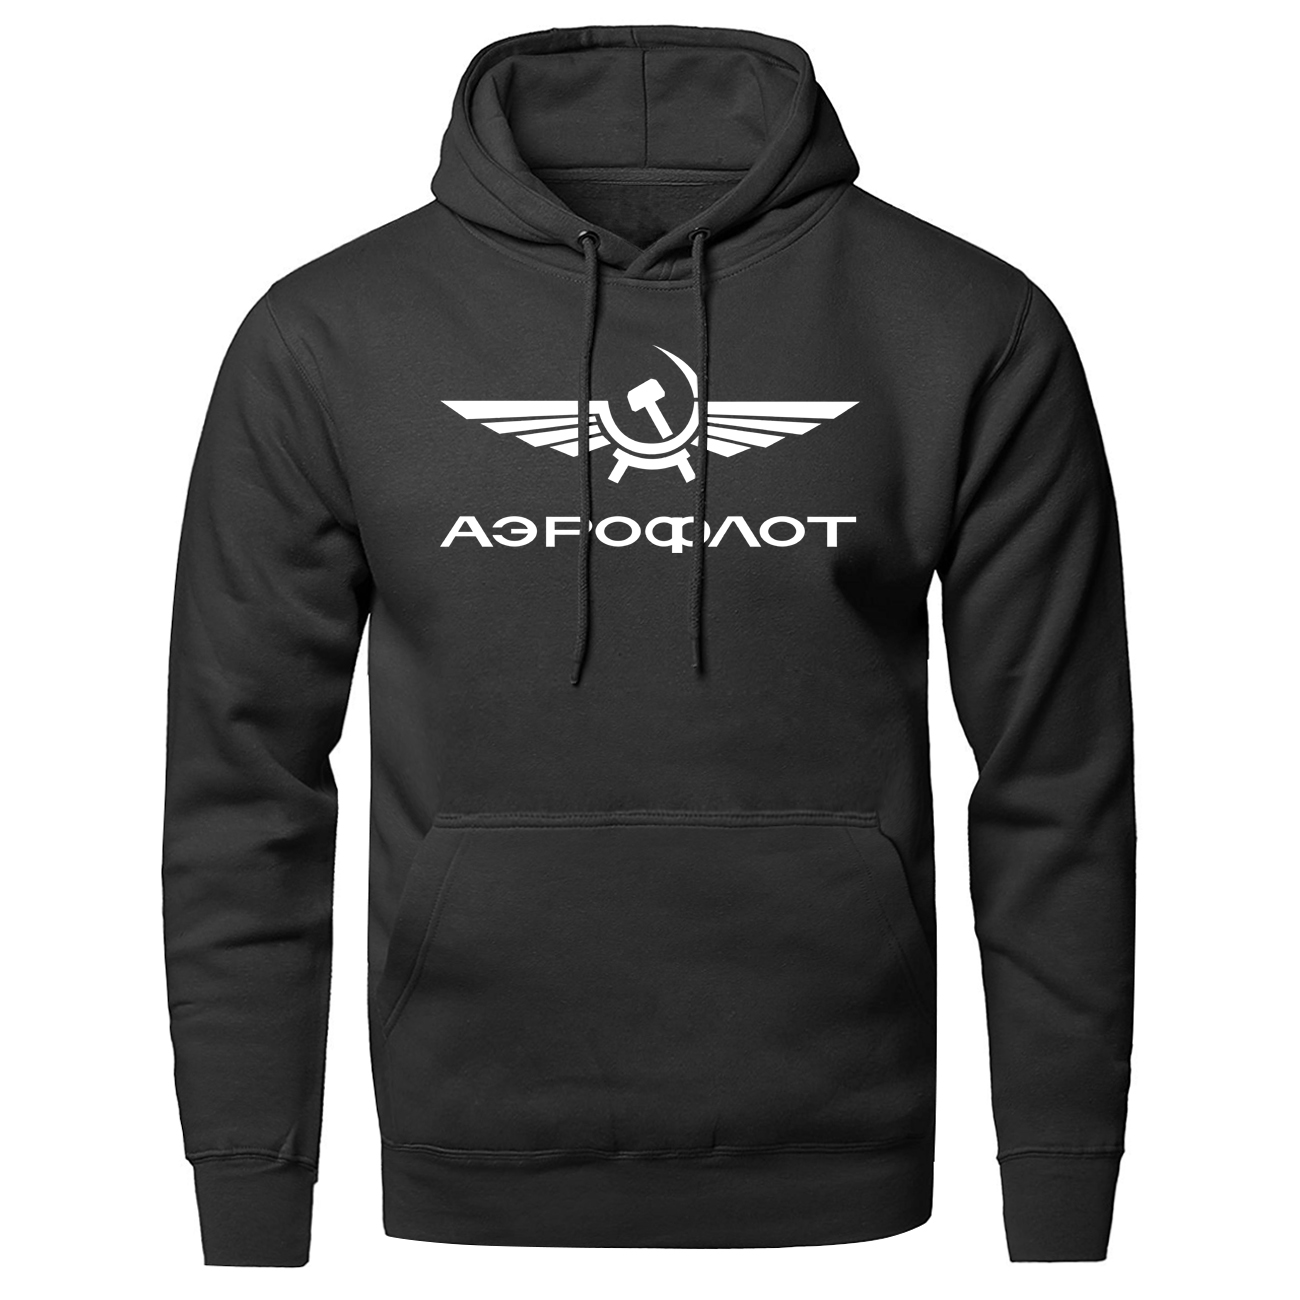 Hot 2020 Man Hip-hop Hoodies Popular Clothes Male Casual Coats Aeroflot CCCP Civil Aviation USSR RUSSIA AIRFORCE Men Tracksuits